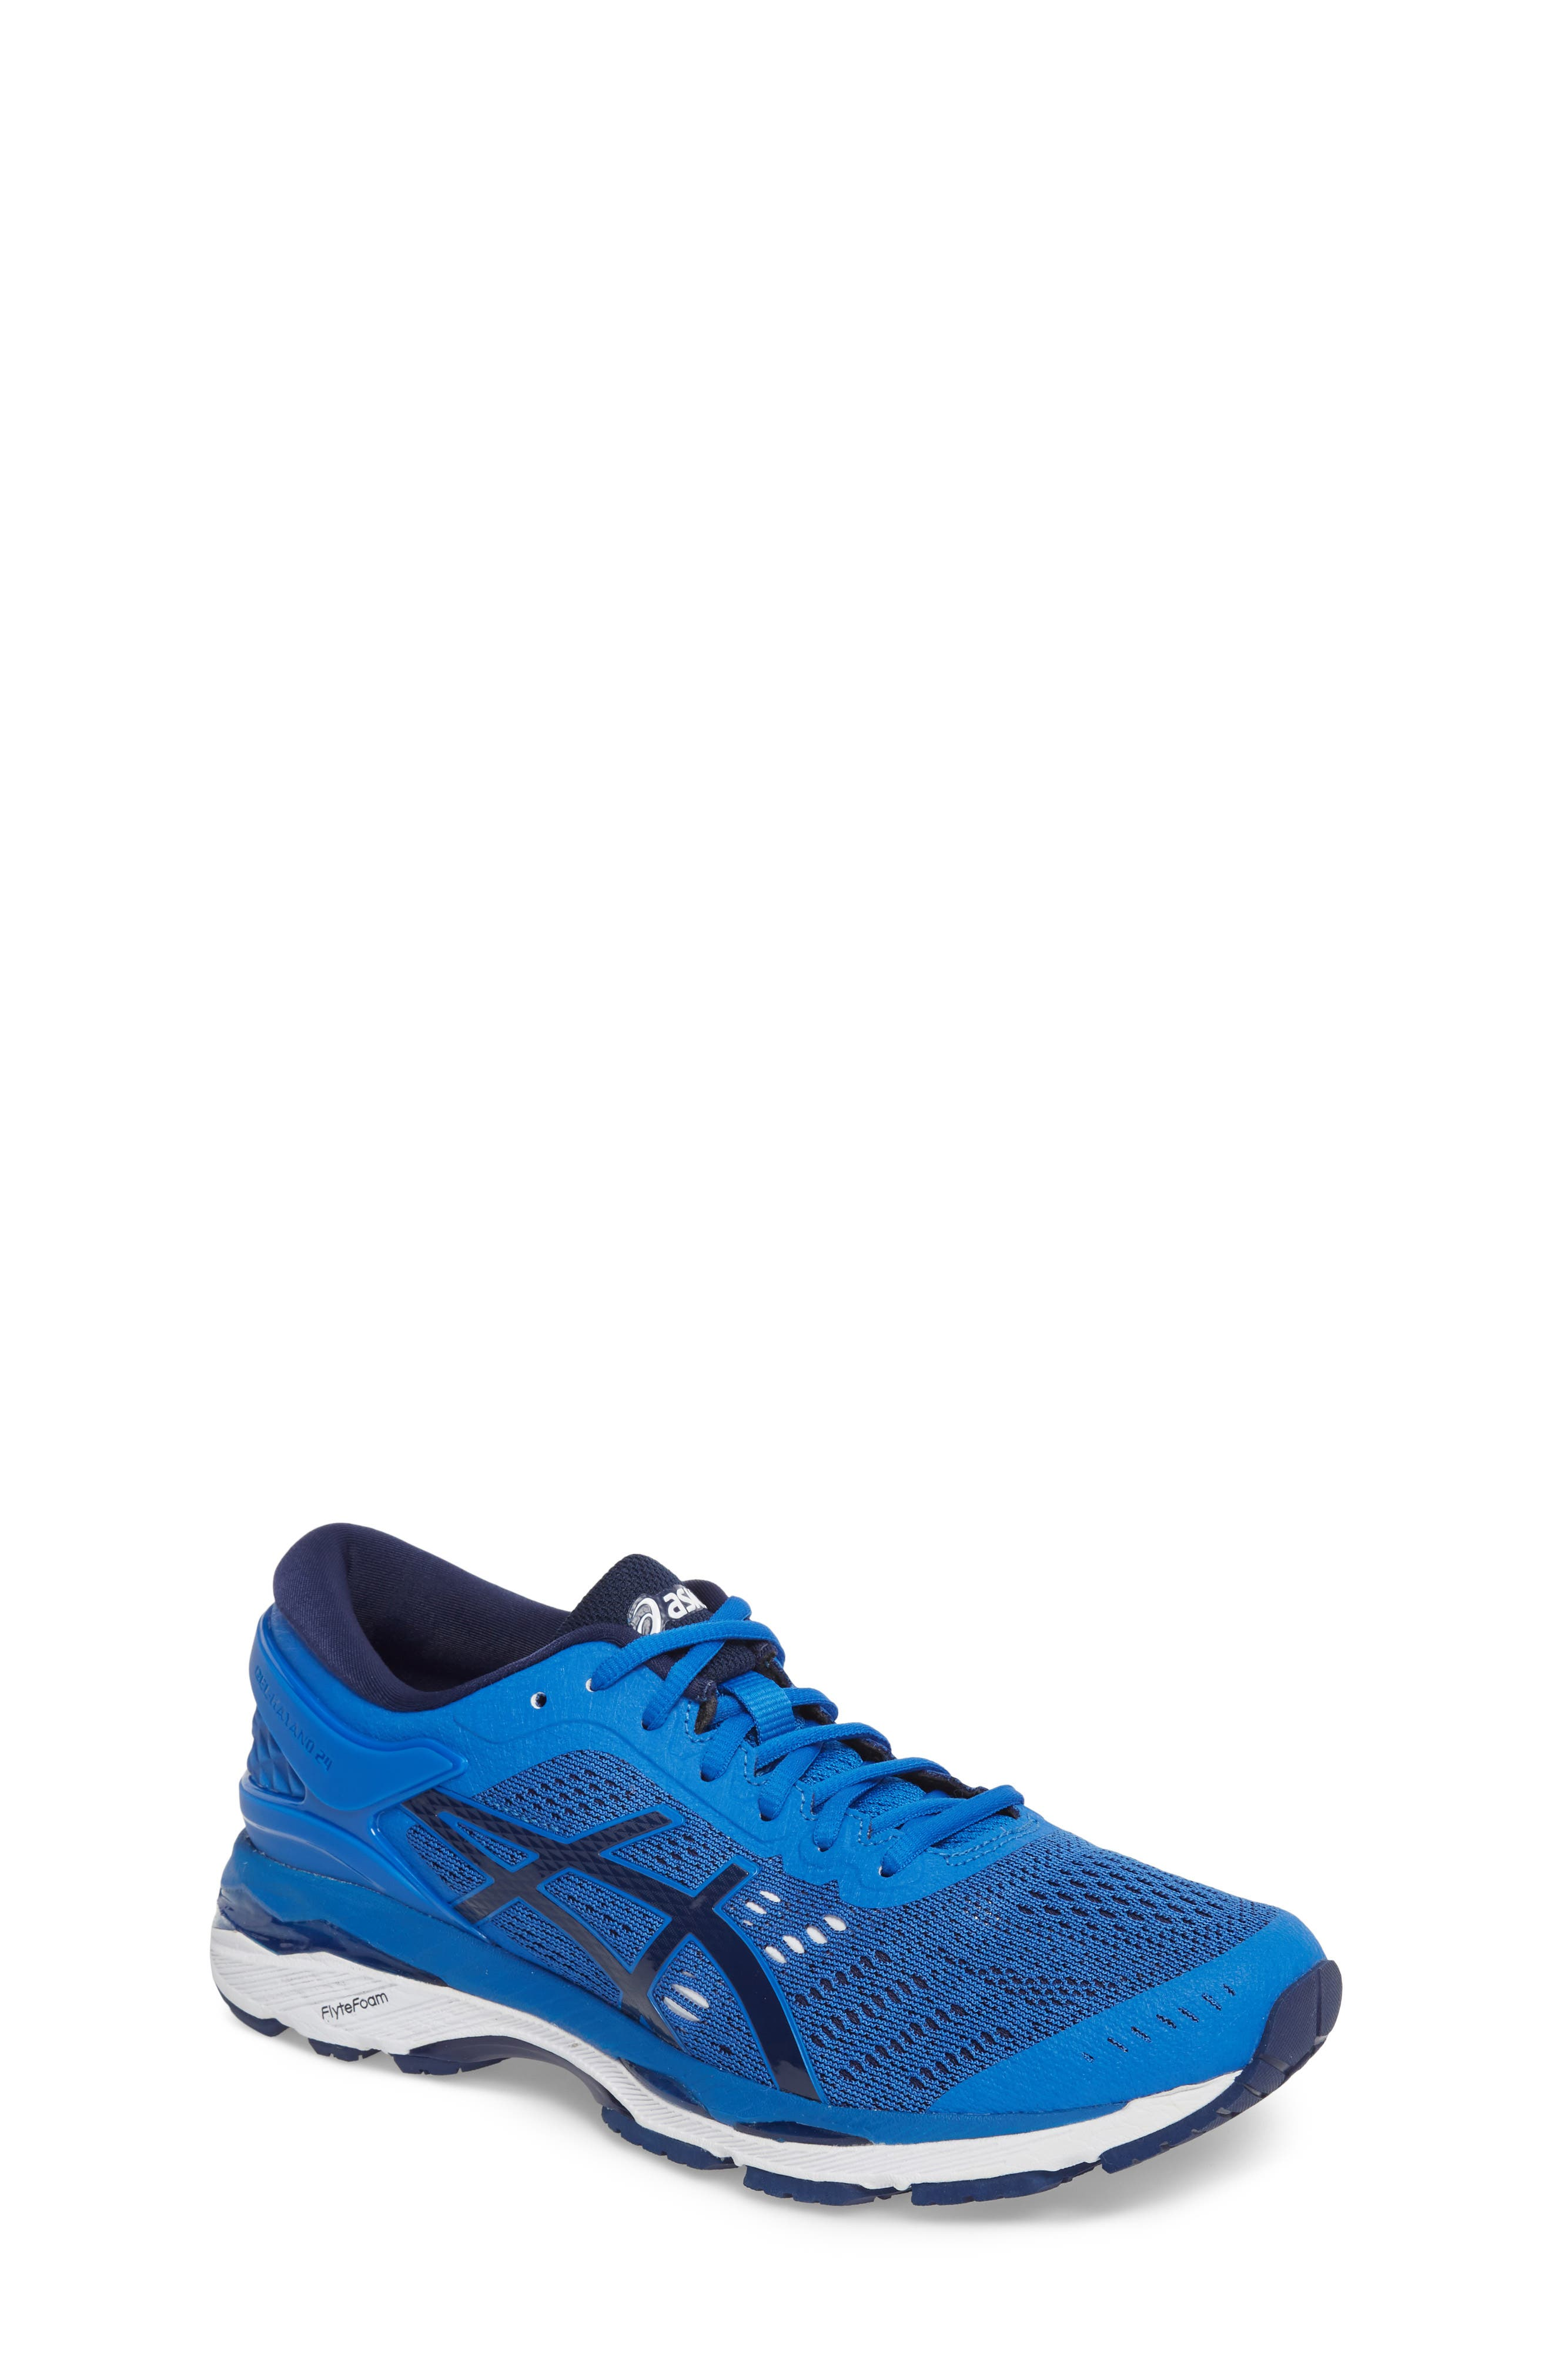 GEL-Kayano<sup>®</sup> 24 GS Running Shoe,                         Main,                         color, 454